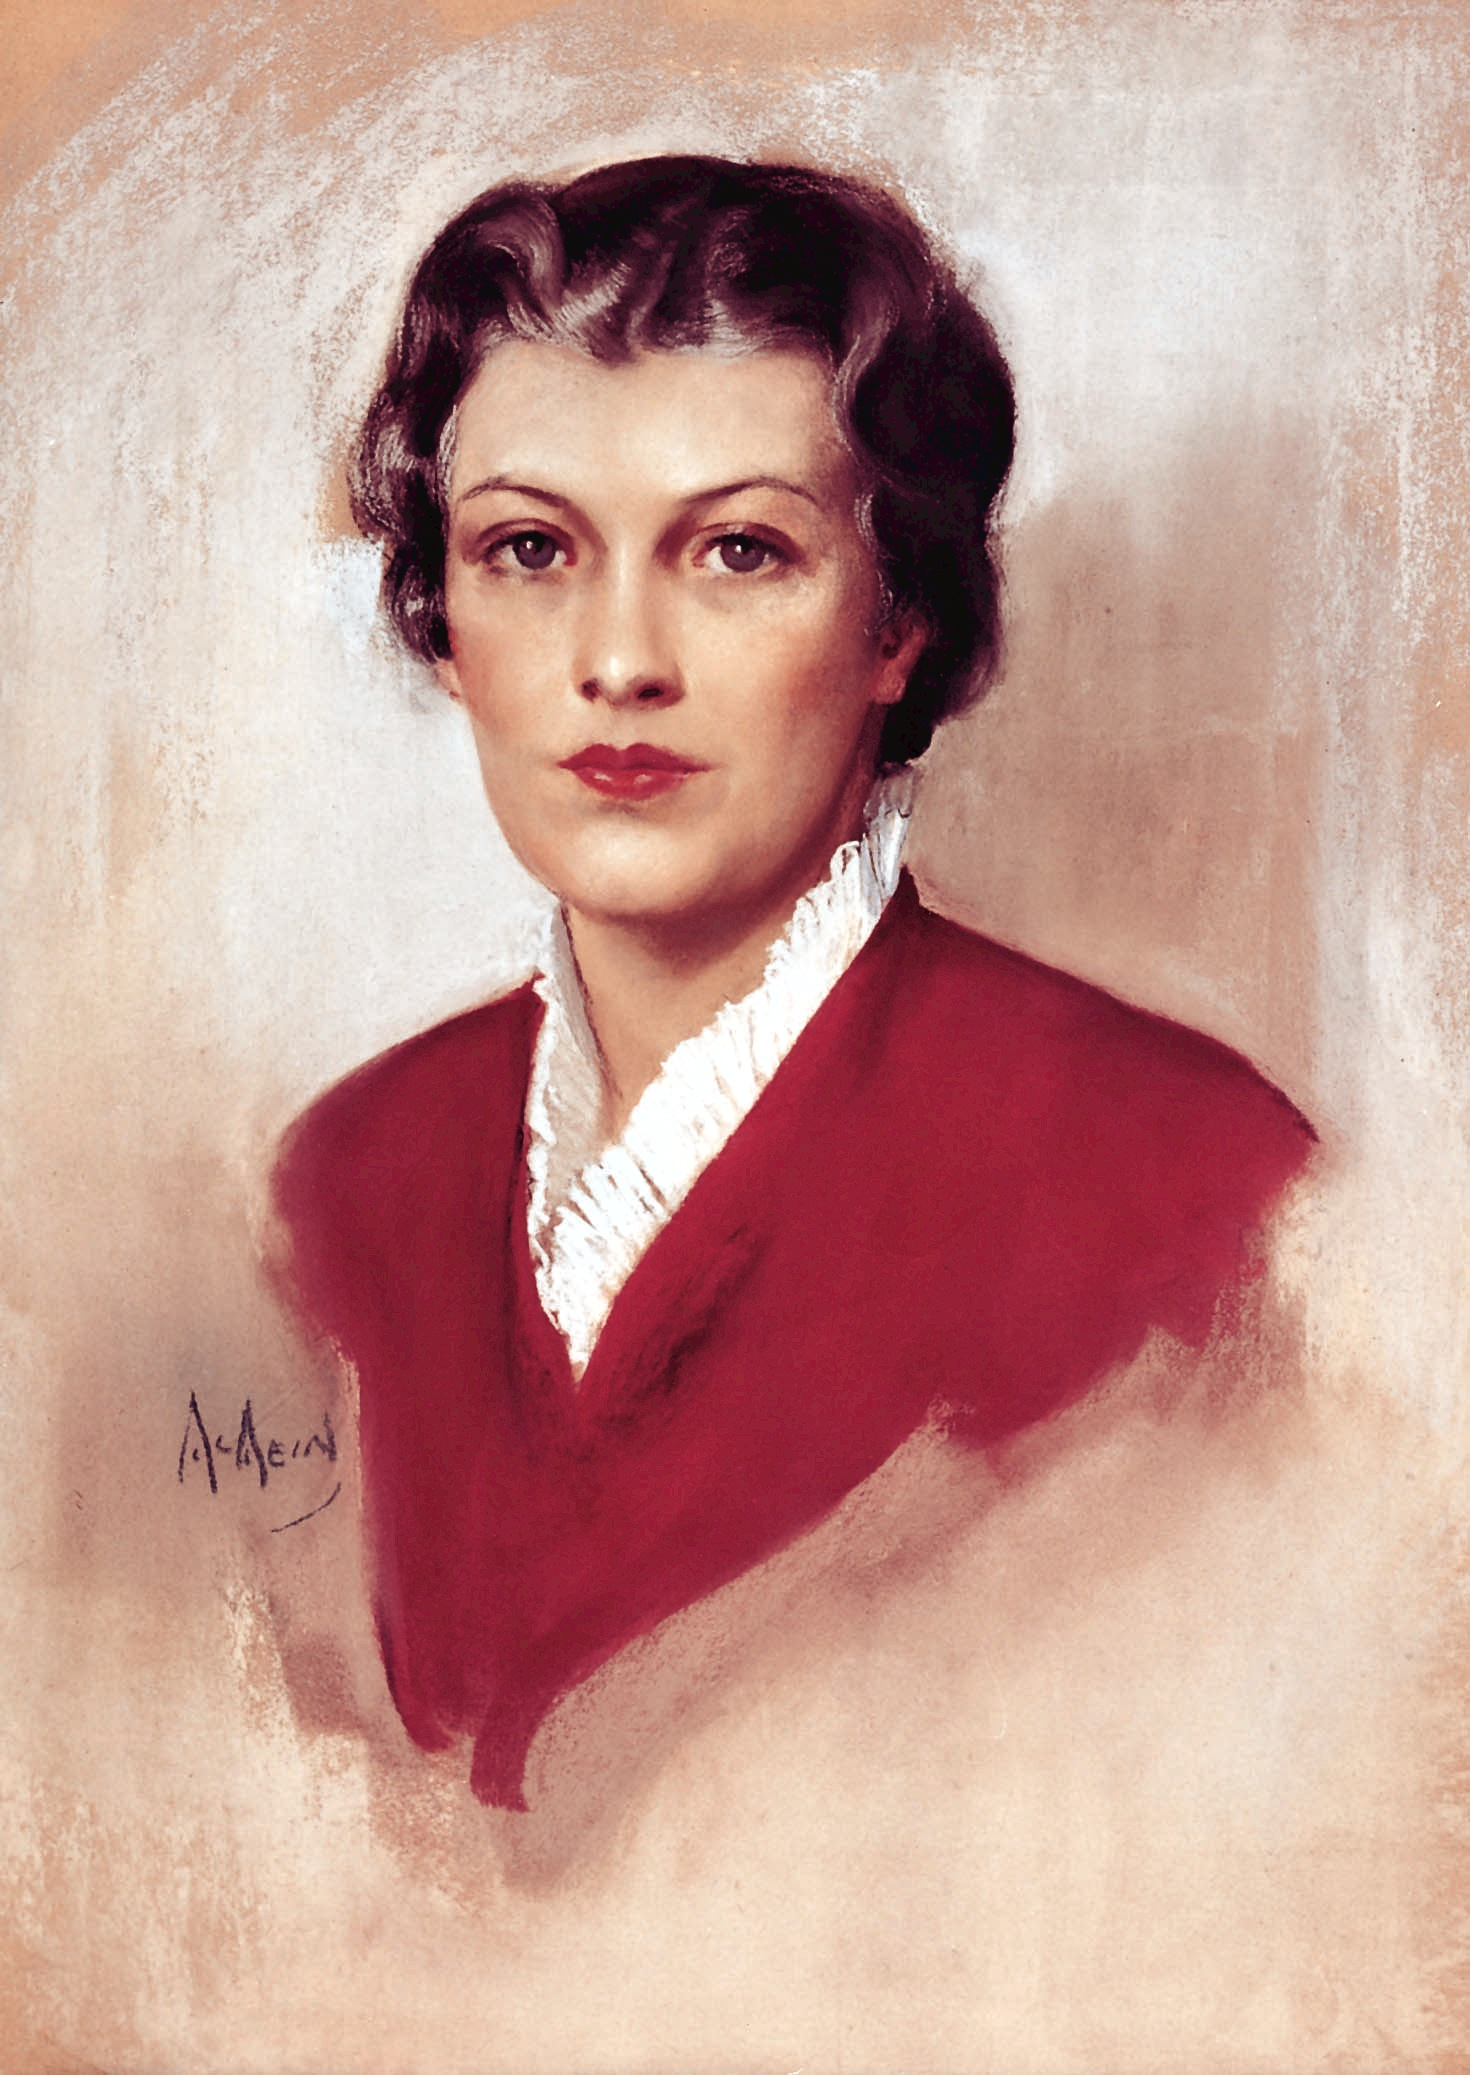 The first portrait of Betty Crocker was created in 1936 and remained the official likeness for nearly 20 years